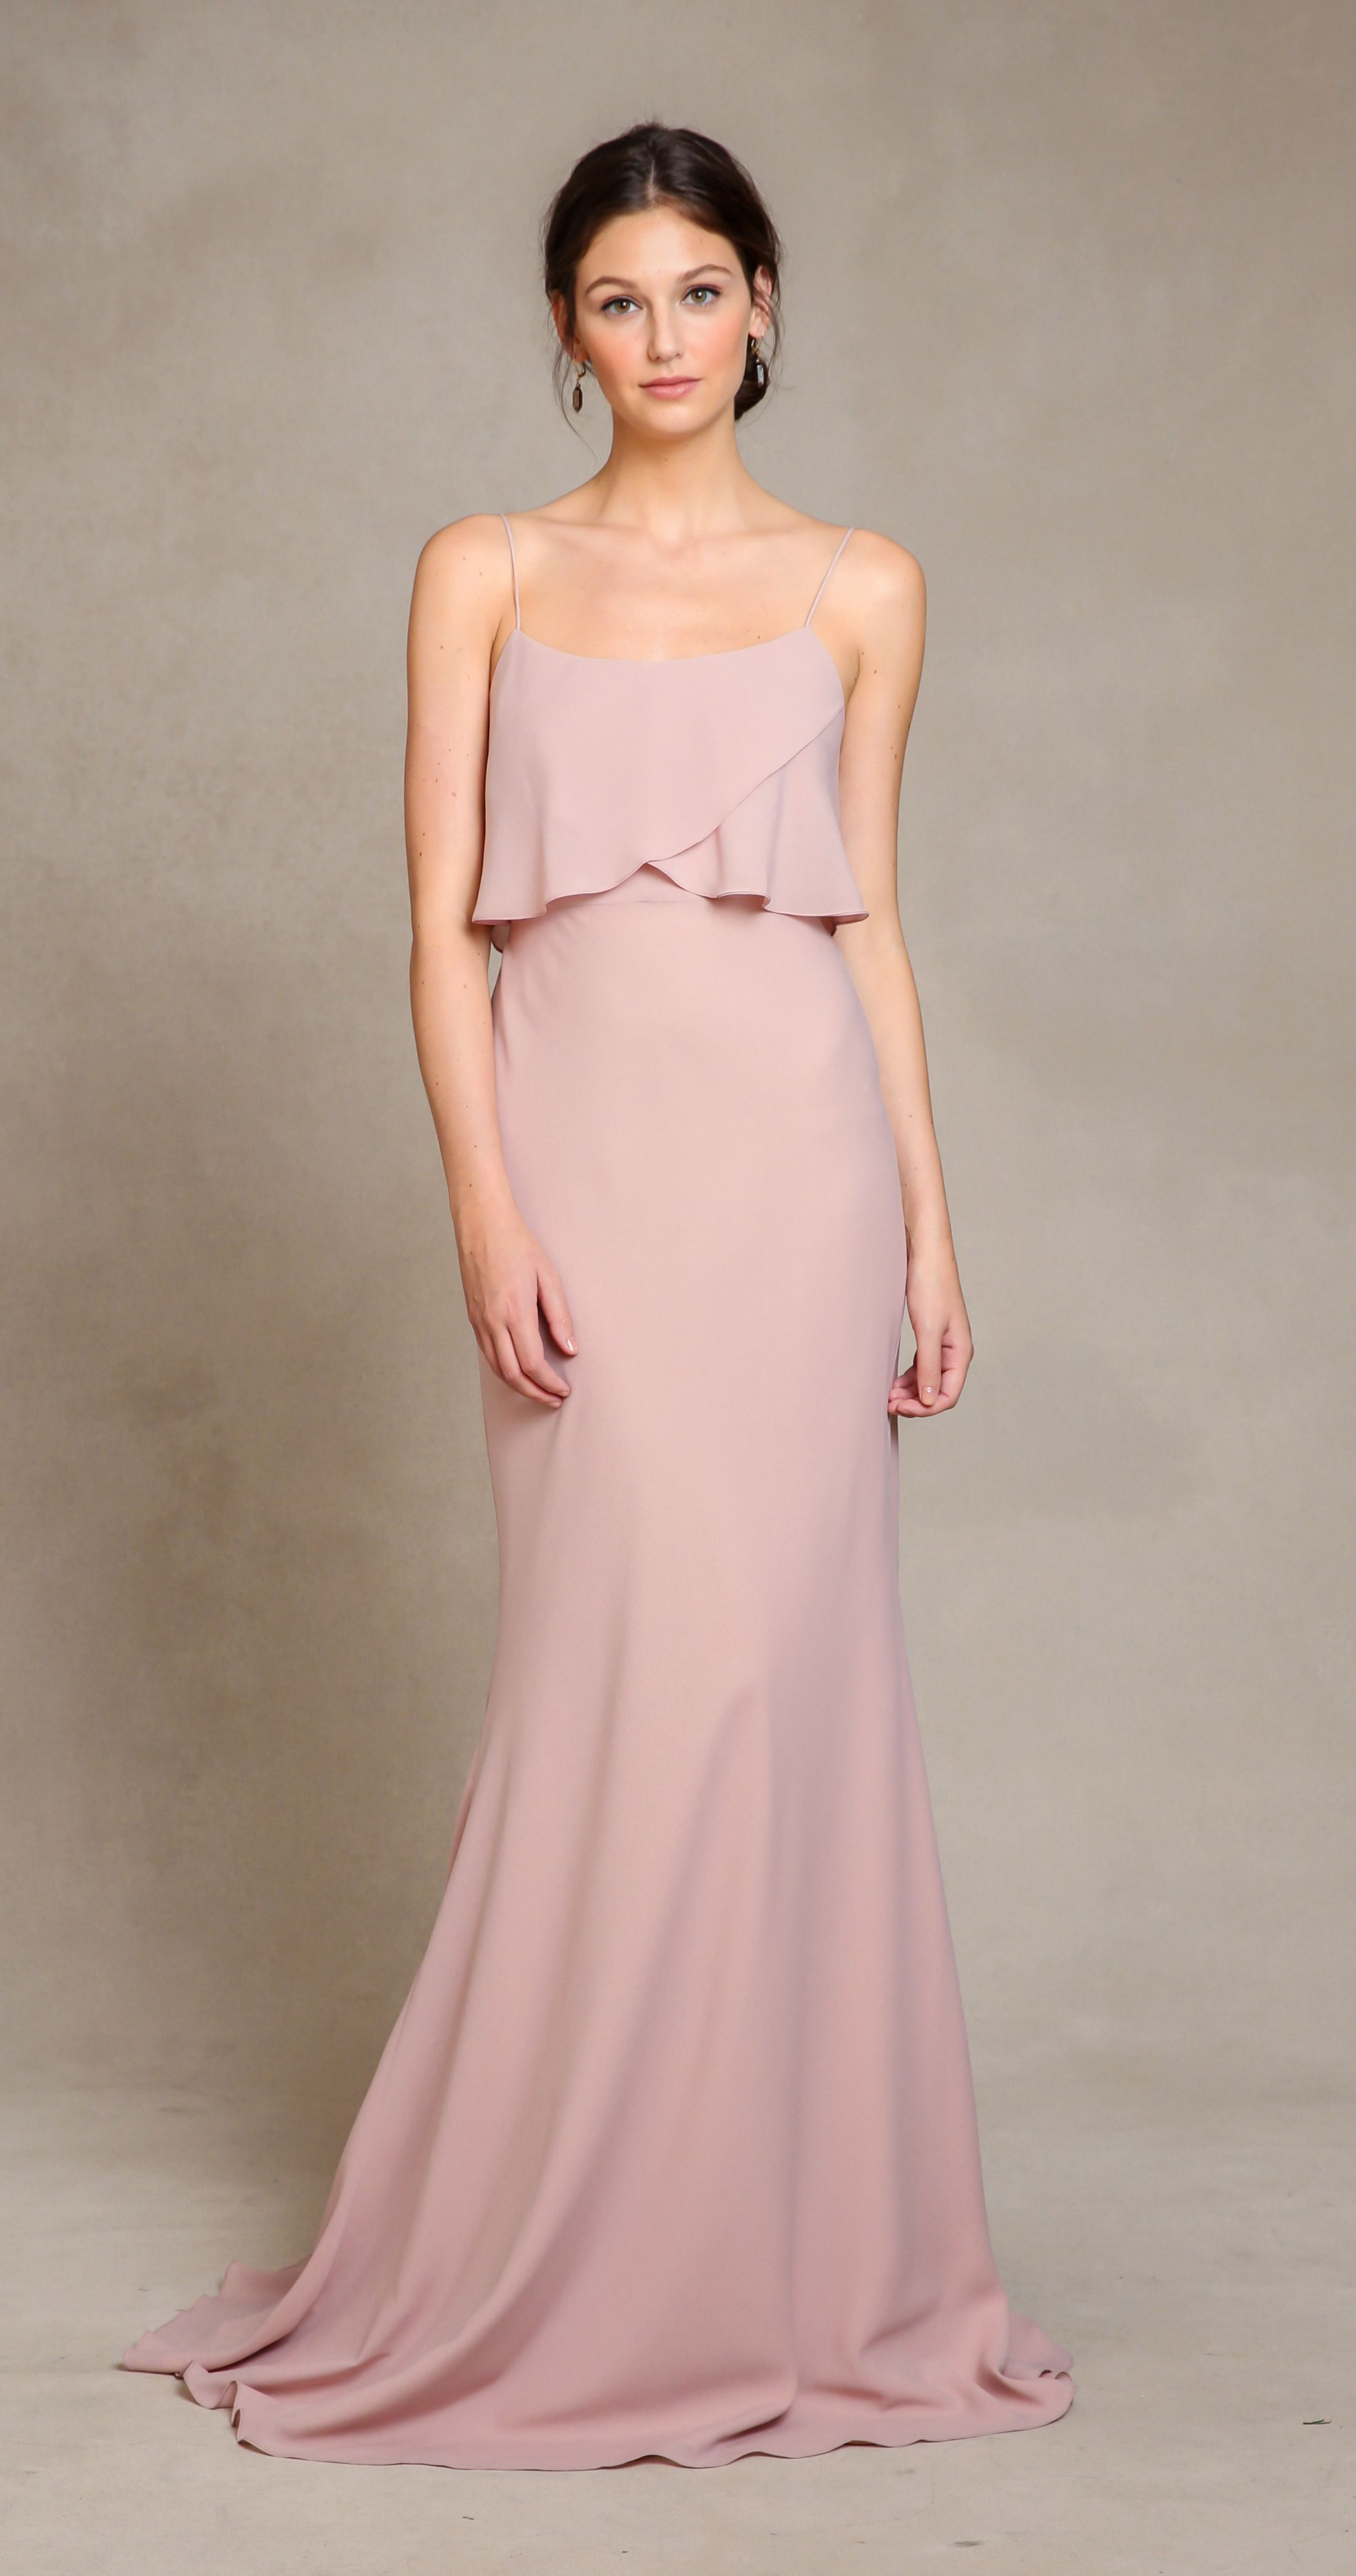 JJ Bridesmaid Dresses